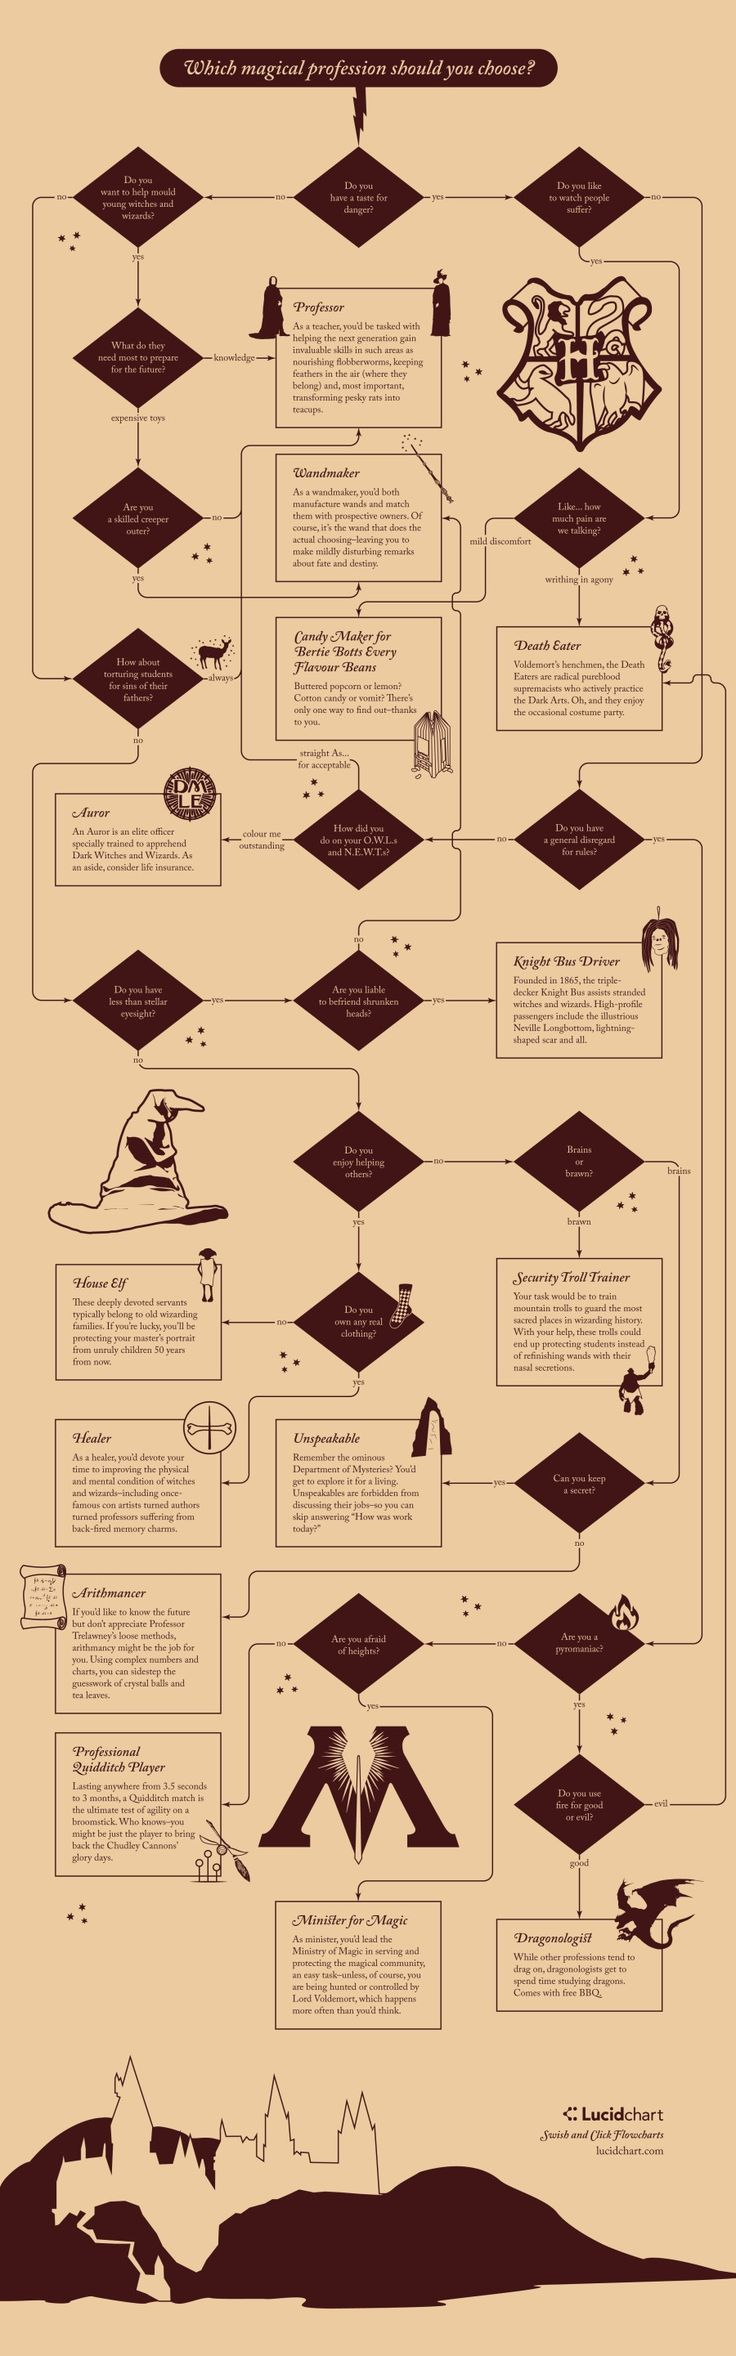 337 best images about harry and ginny on pinterest harry birthday - Which Magical Wizarding Profession Should You Choose Flowchart